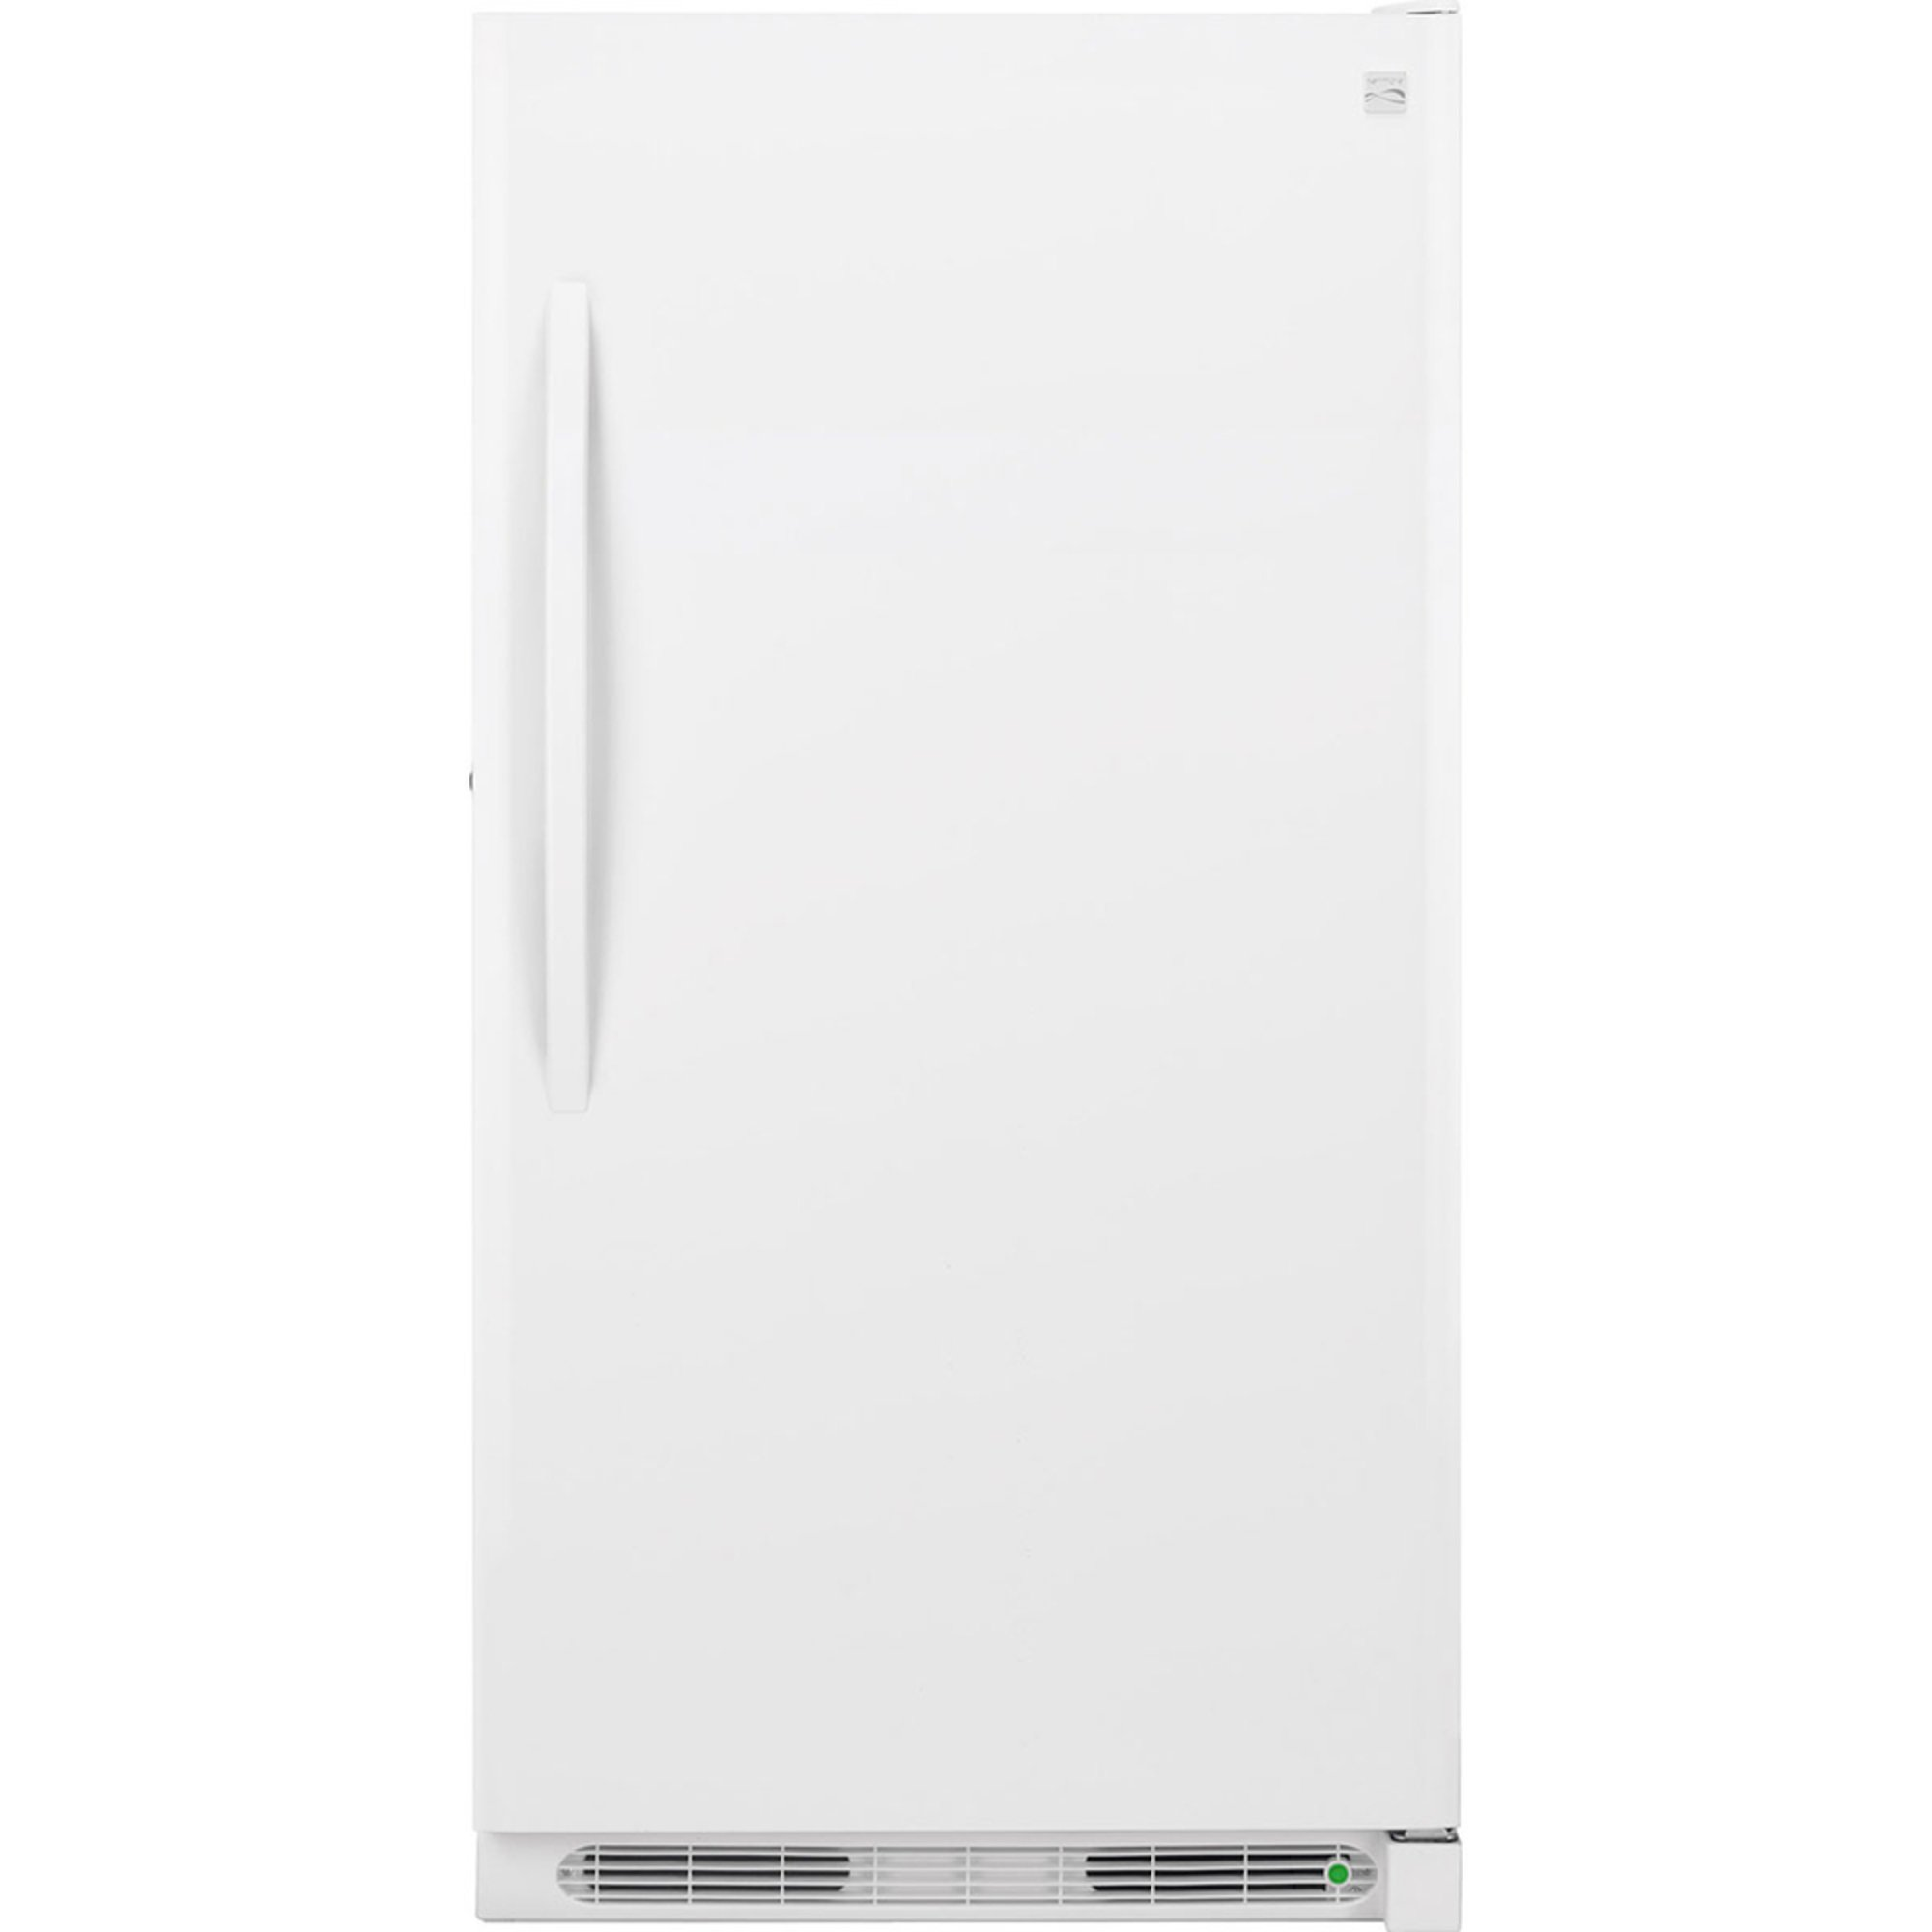 Kenmore 16 6 Cu Ft Upright Freezer White 46 22742 Freezers For The Home Your Navy Exchange Official Site